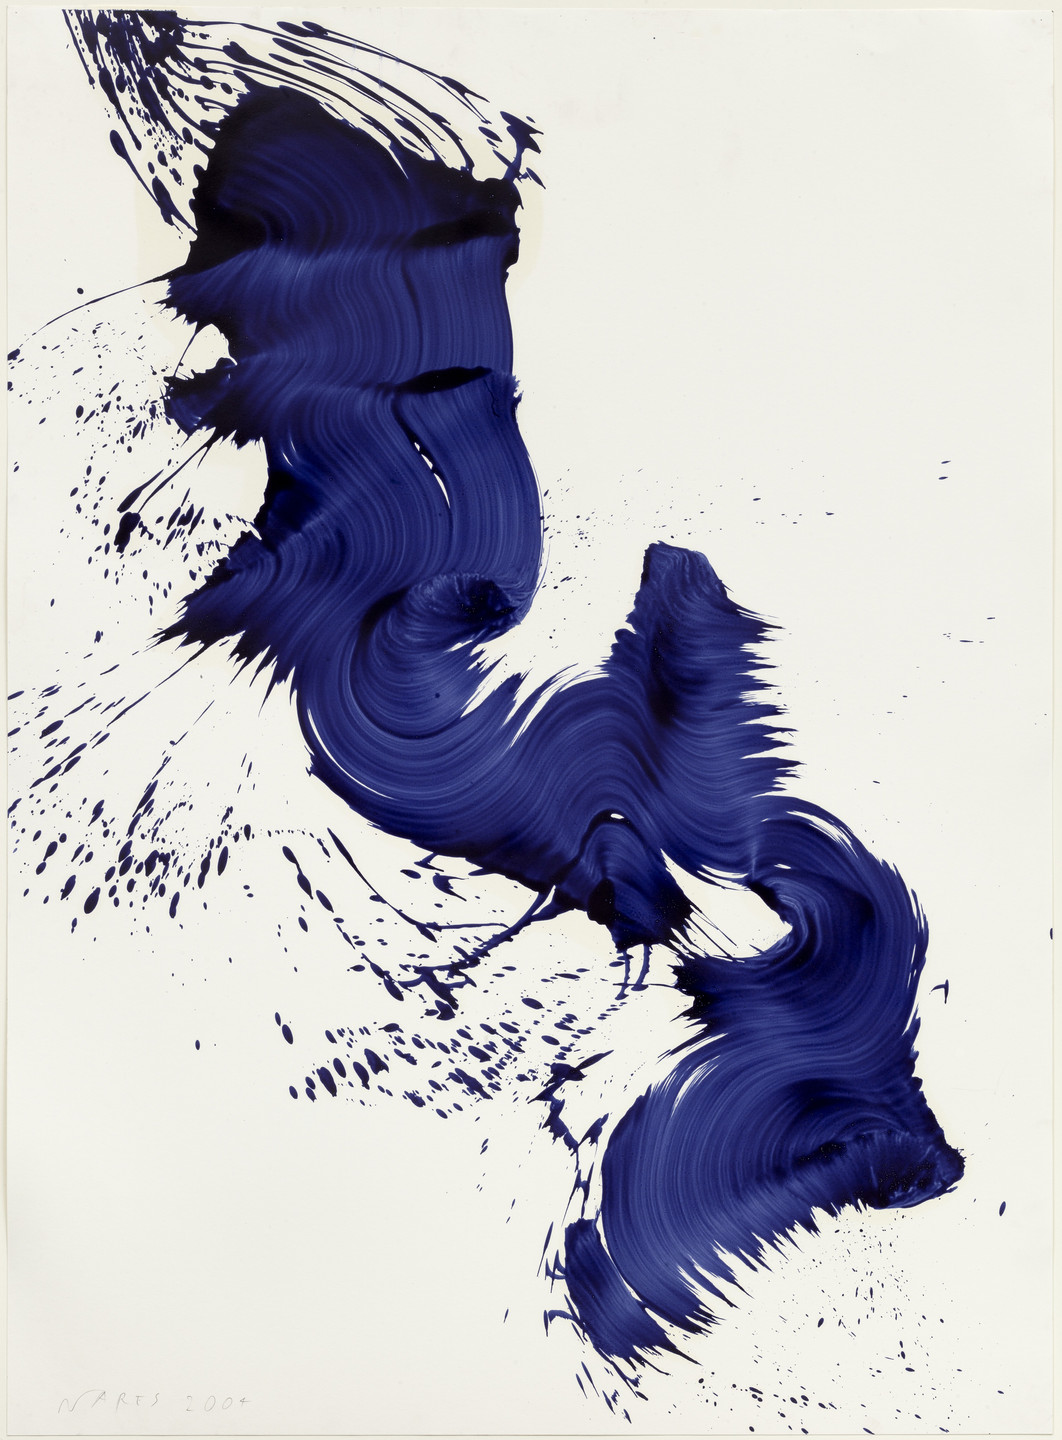 James Nares. Untitled. 2004